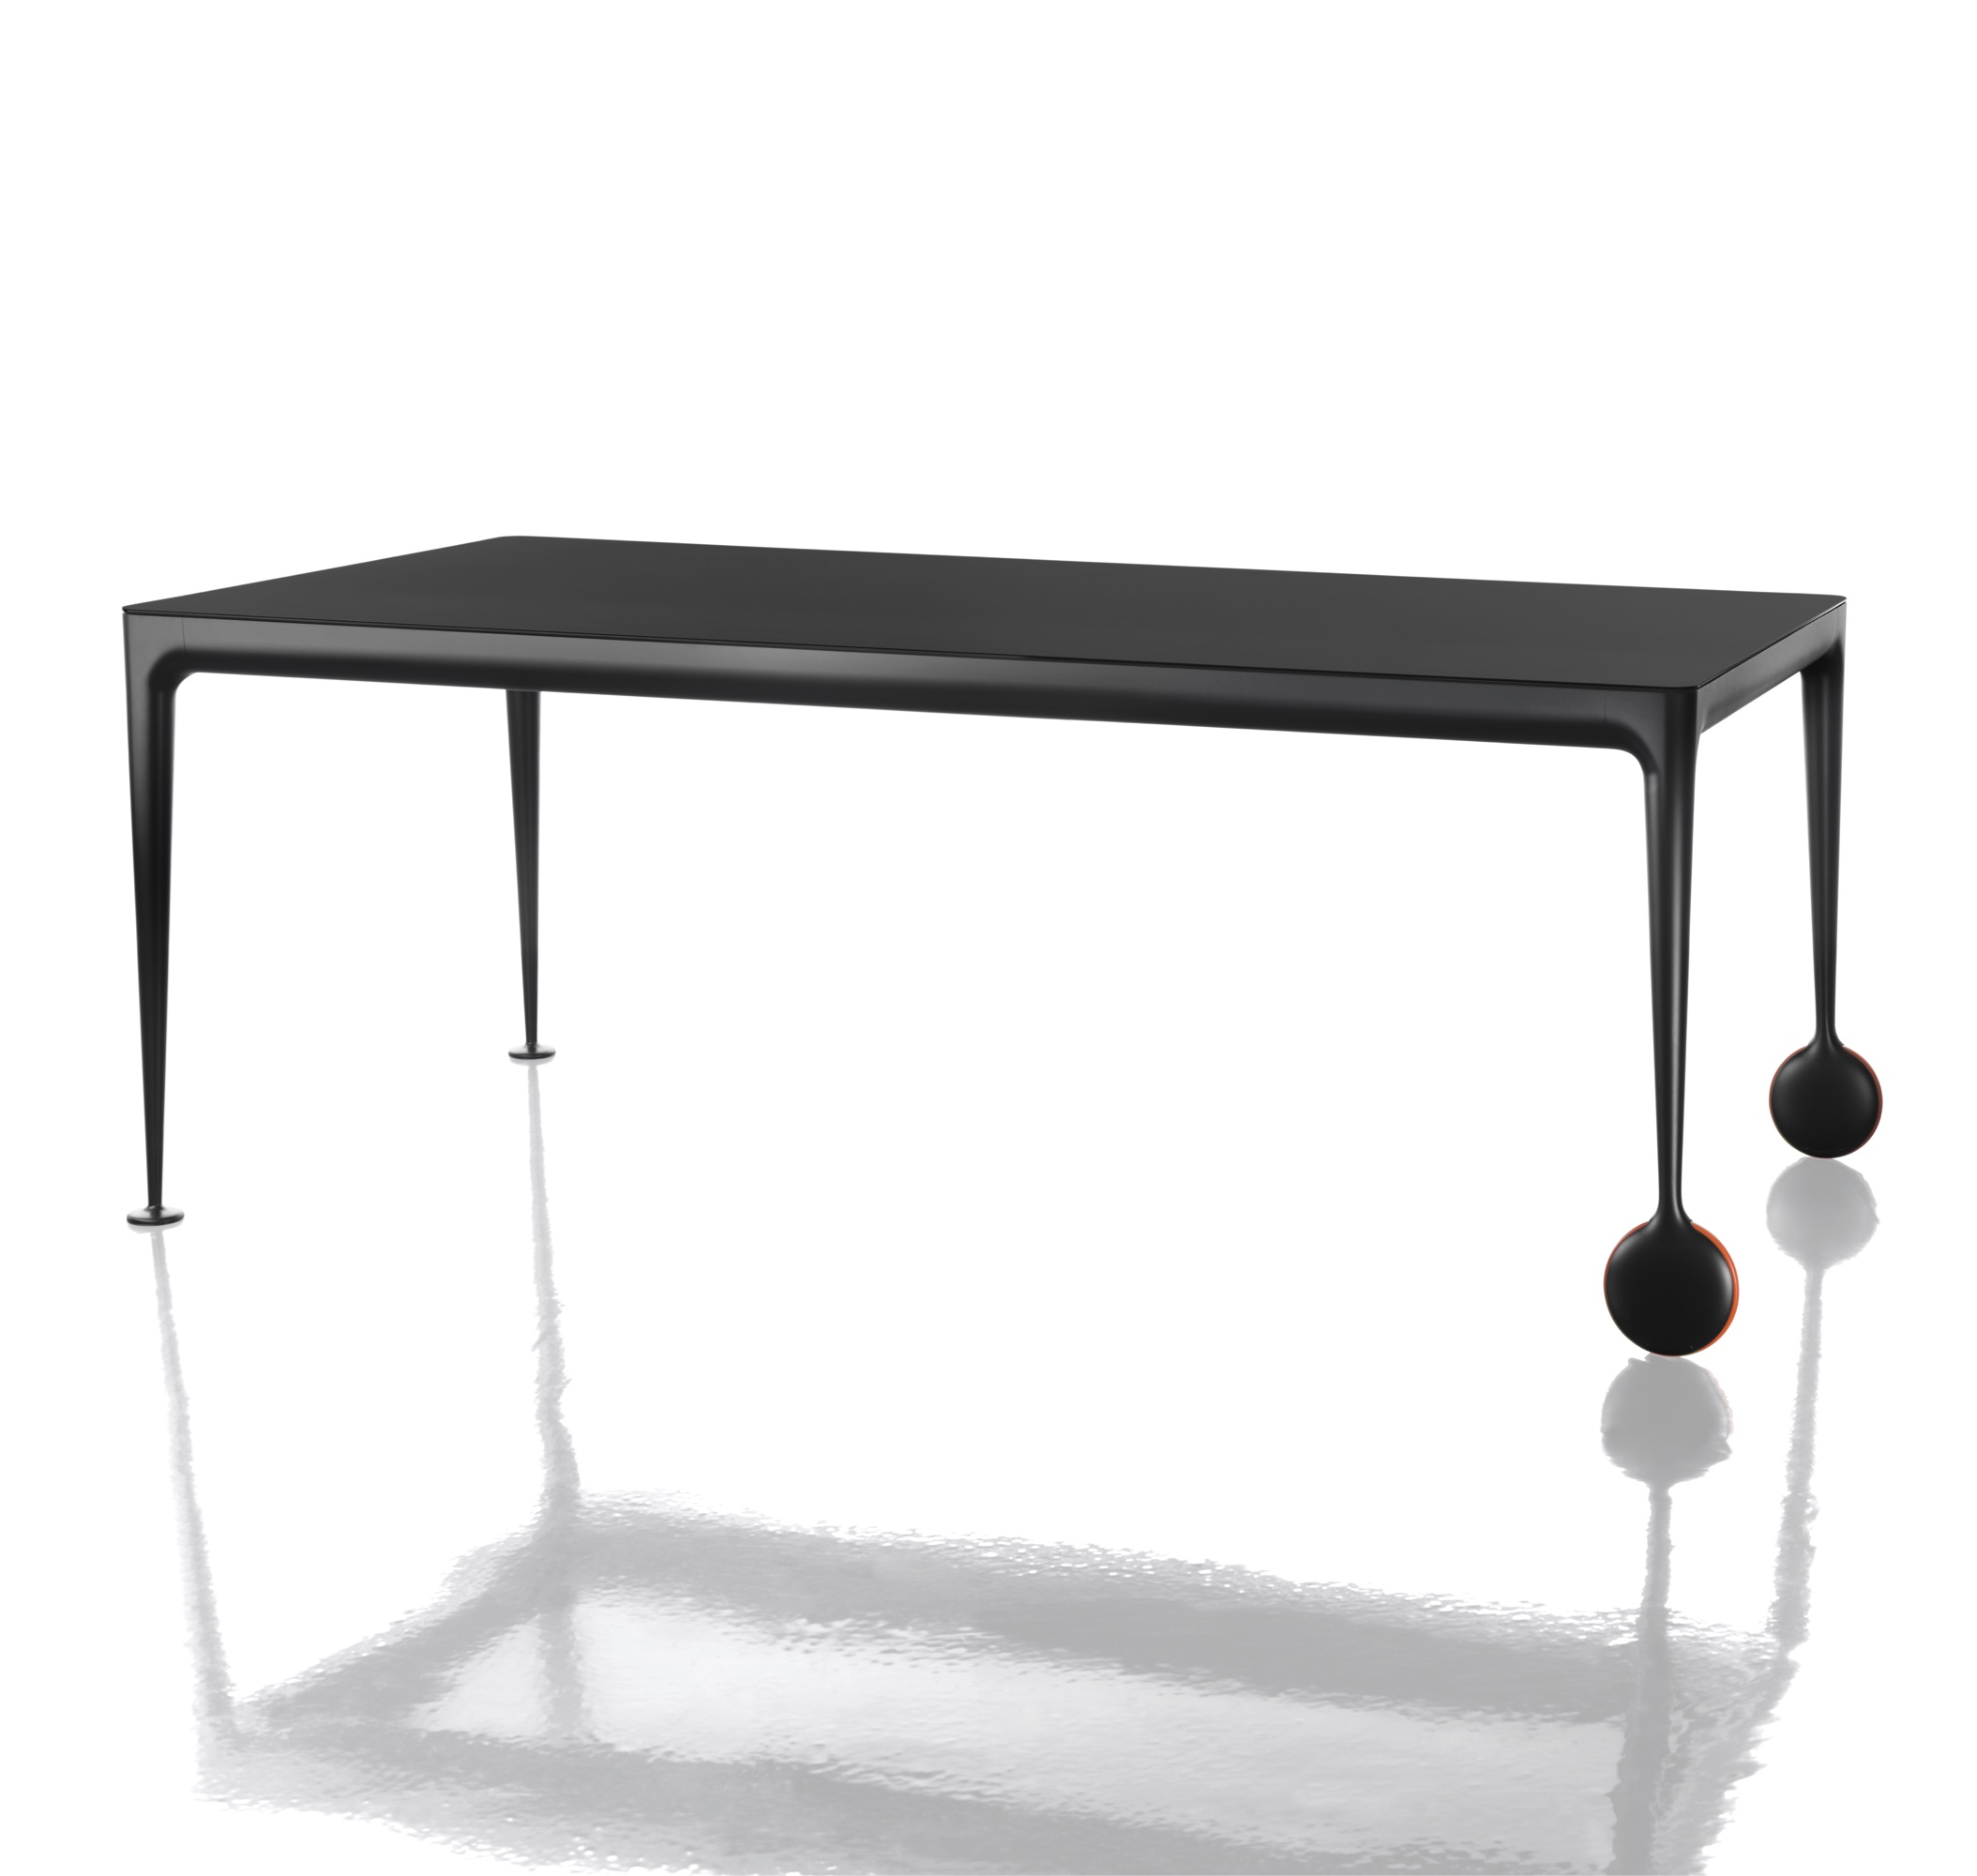 magis big will table in black